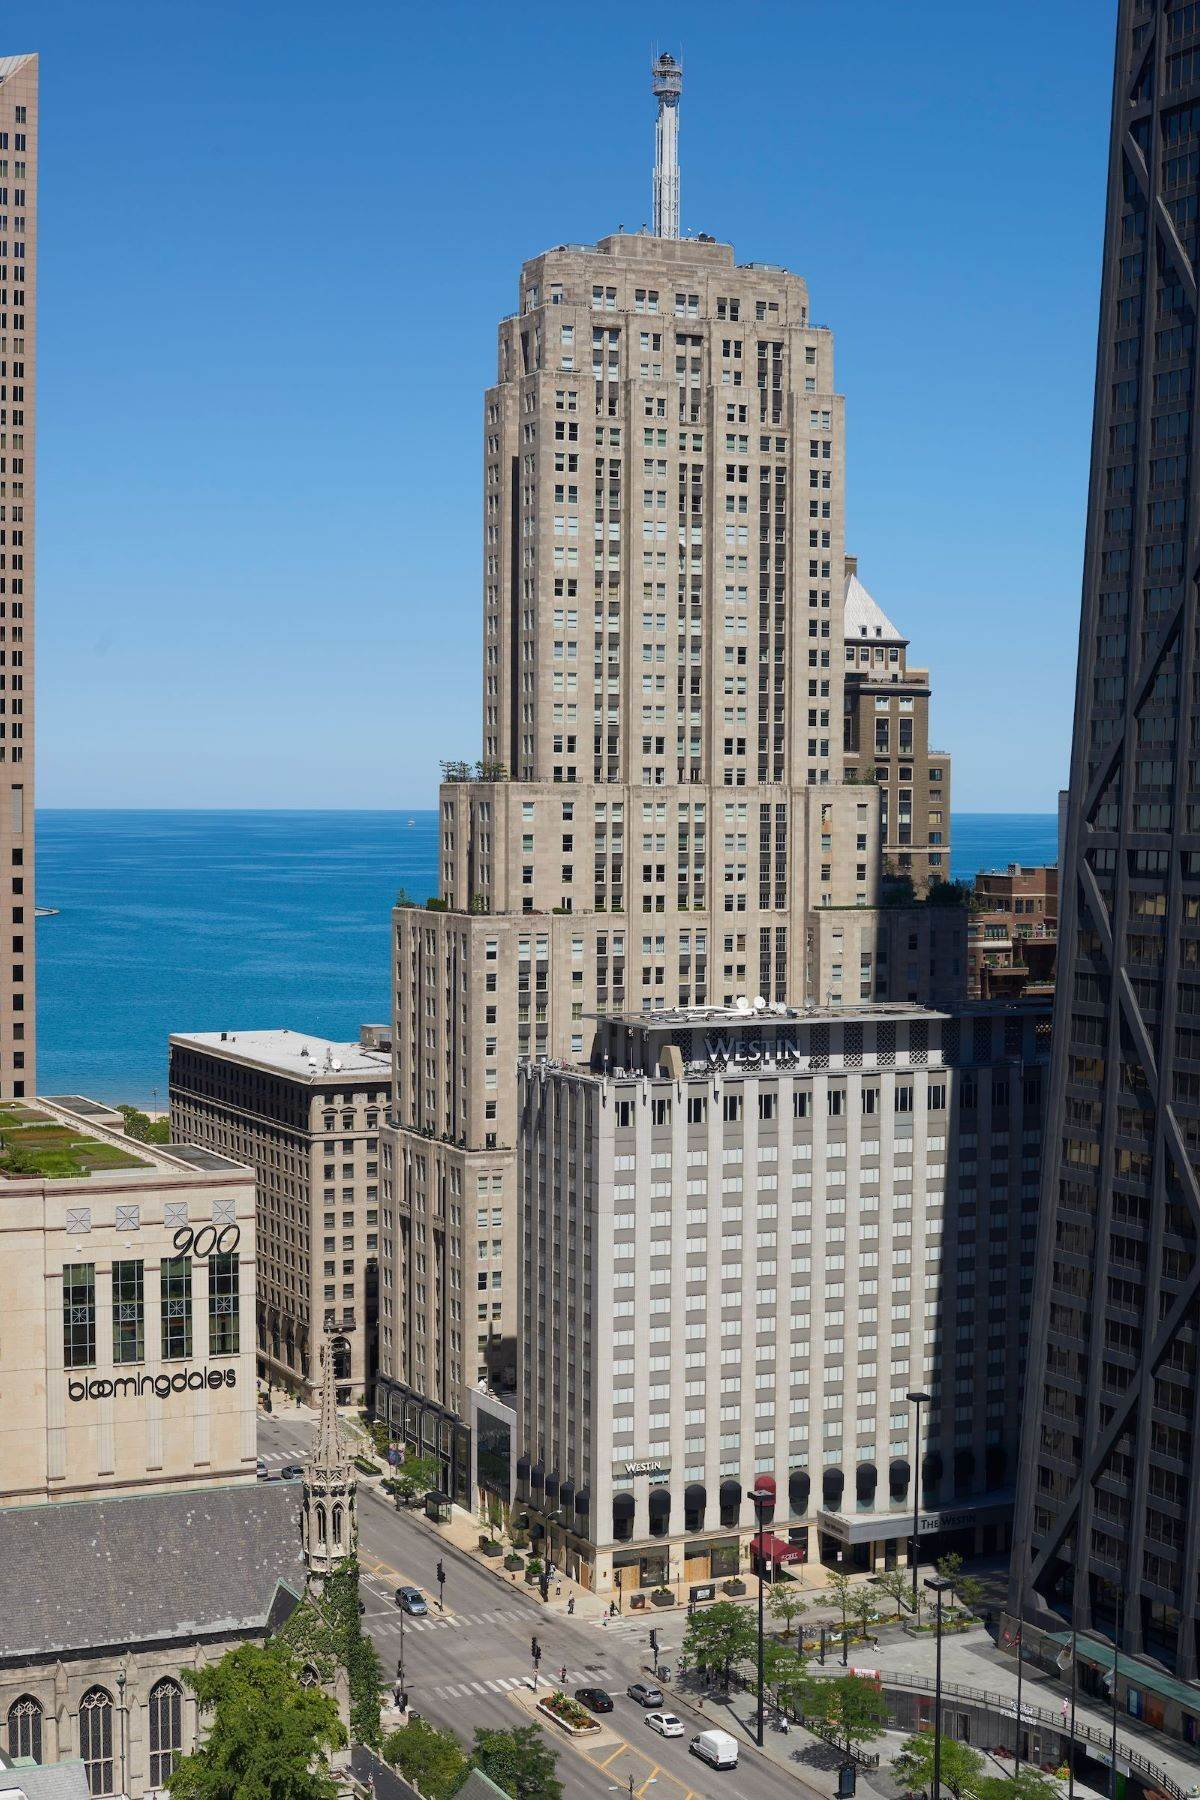 Property for Sale at Stunning Full Floor Residence With Panoramic Lake and City Views 159 E Walton Street, Unit 33A Chicago, Illinois 60611 United States